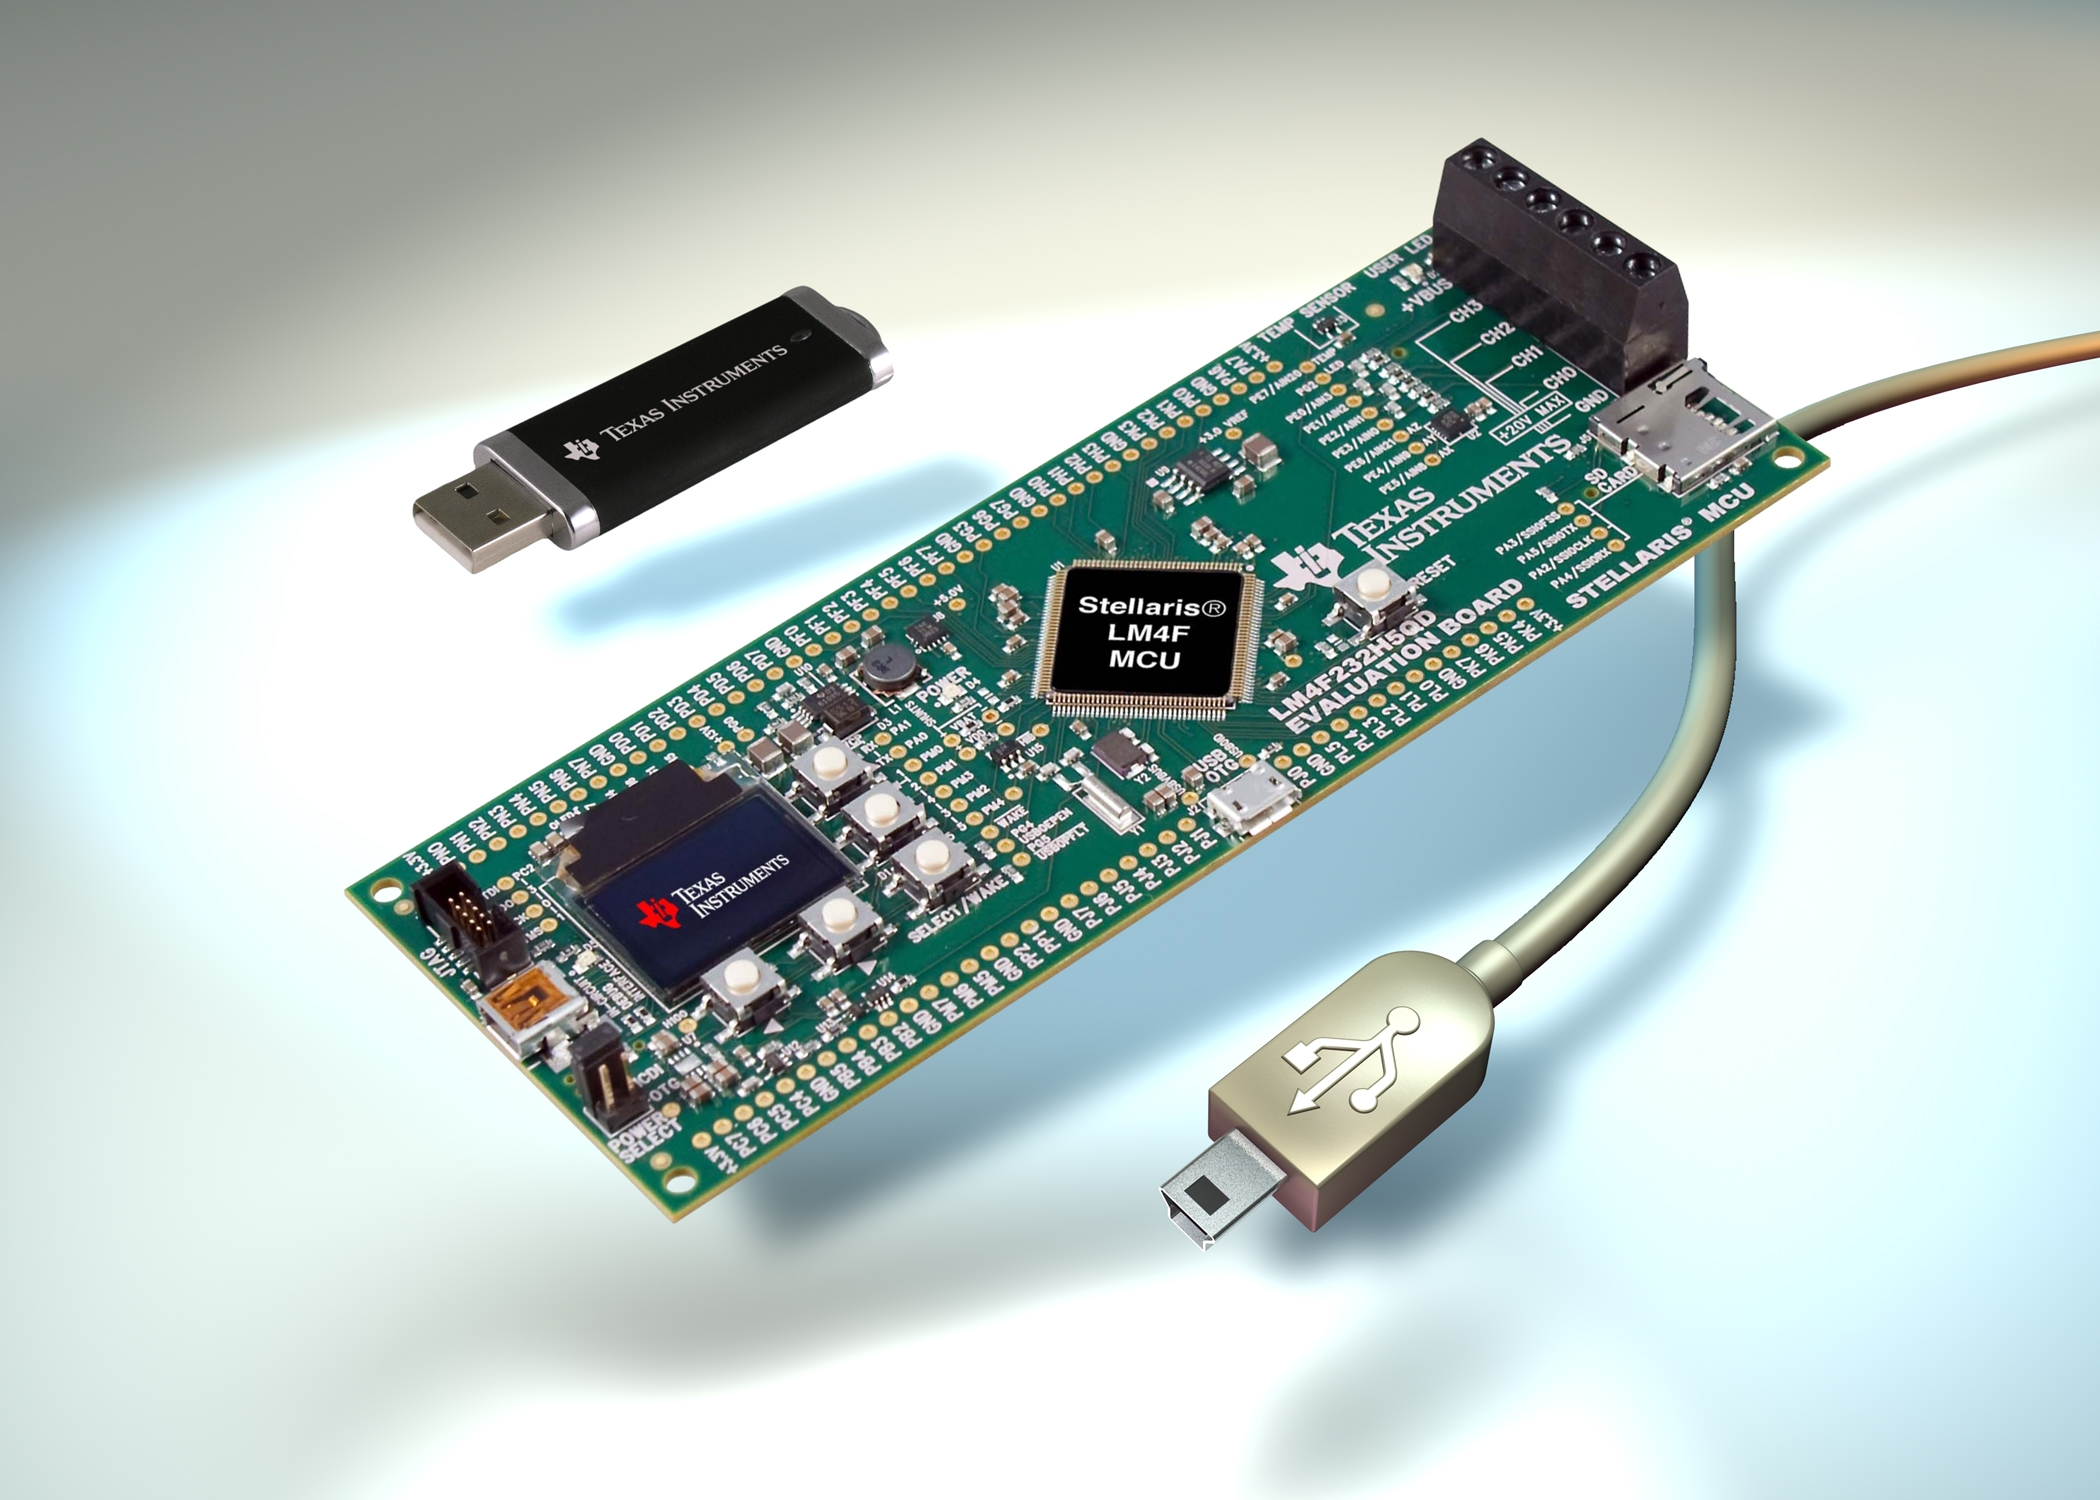 TI Stellaris ARM Cortex–M4 MCU